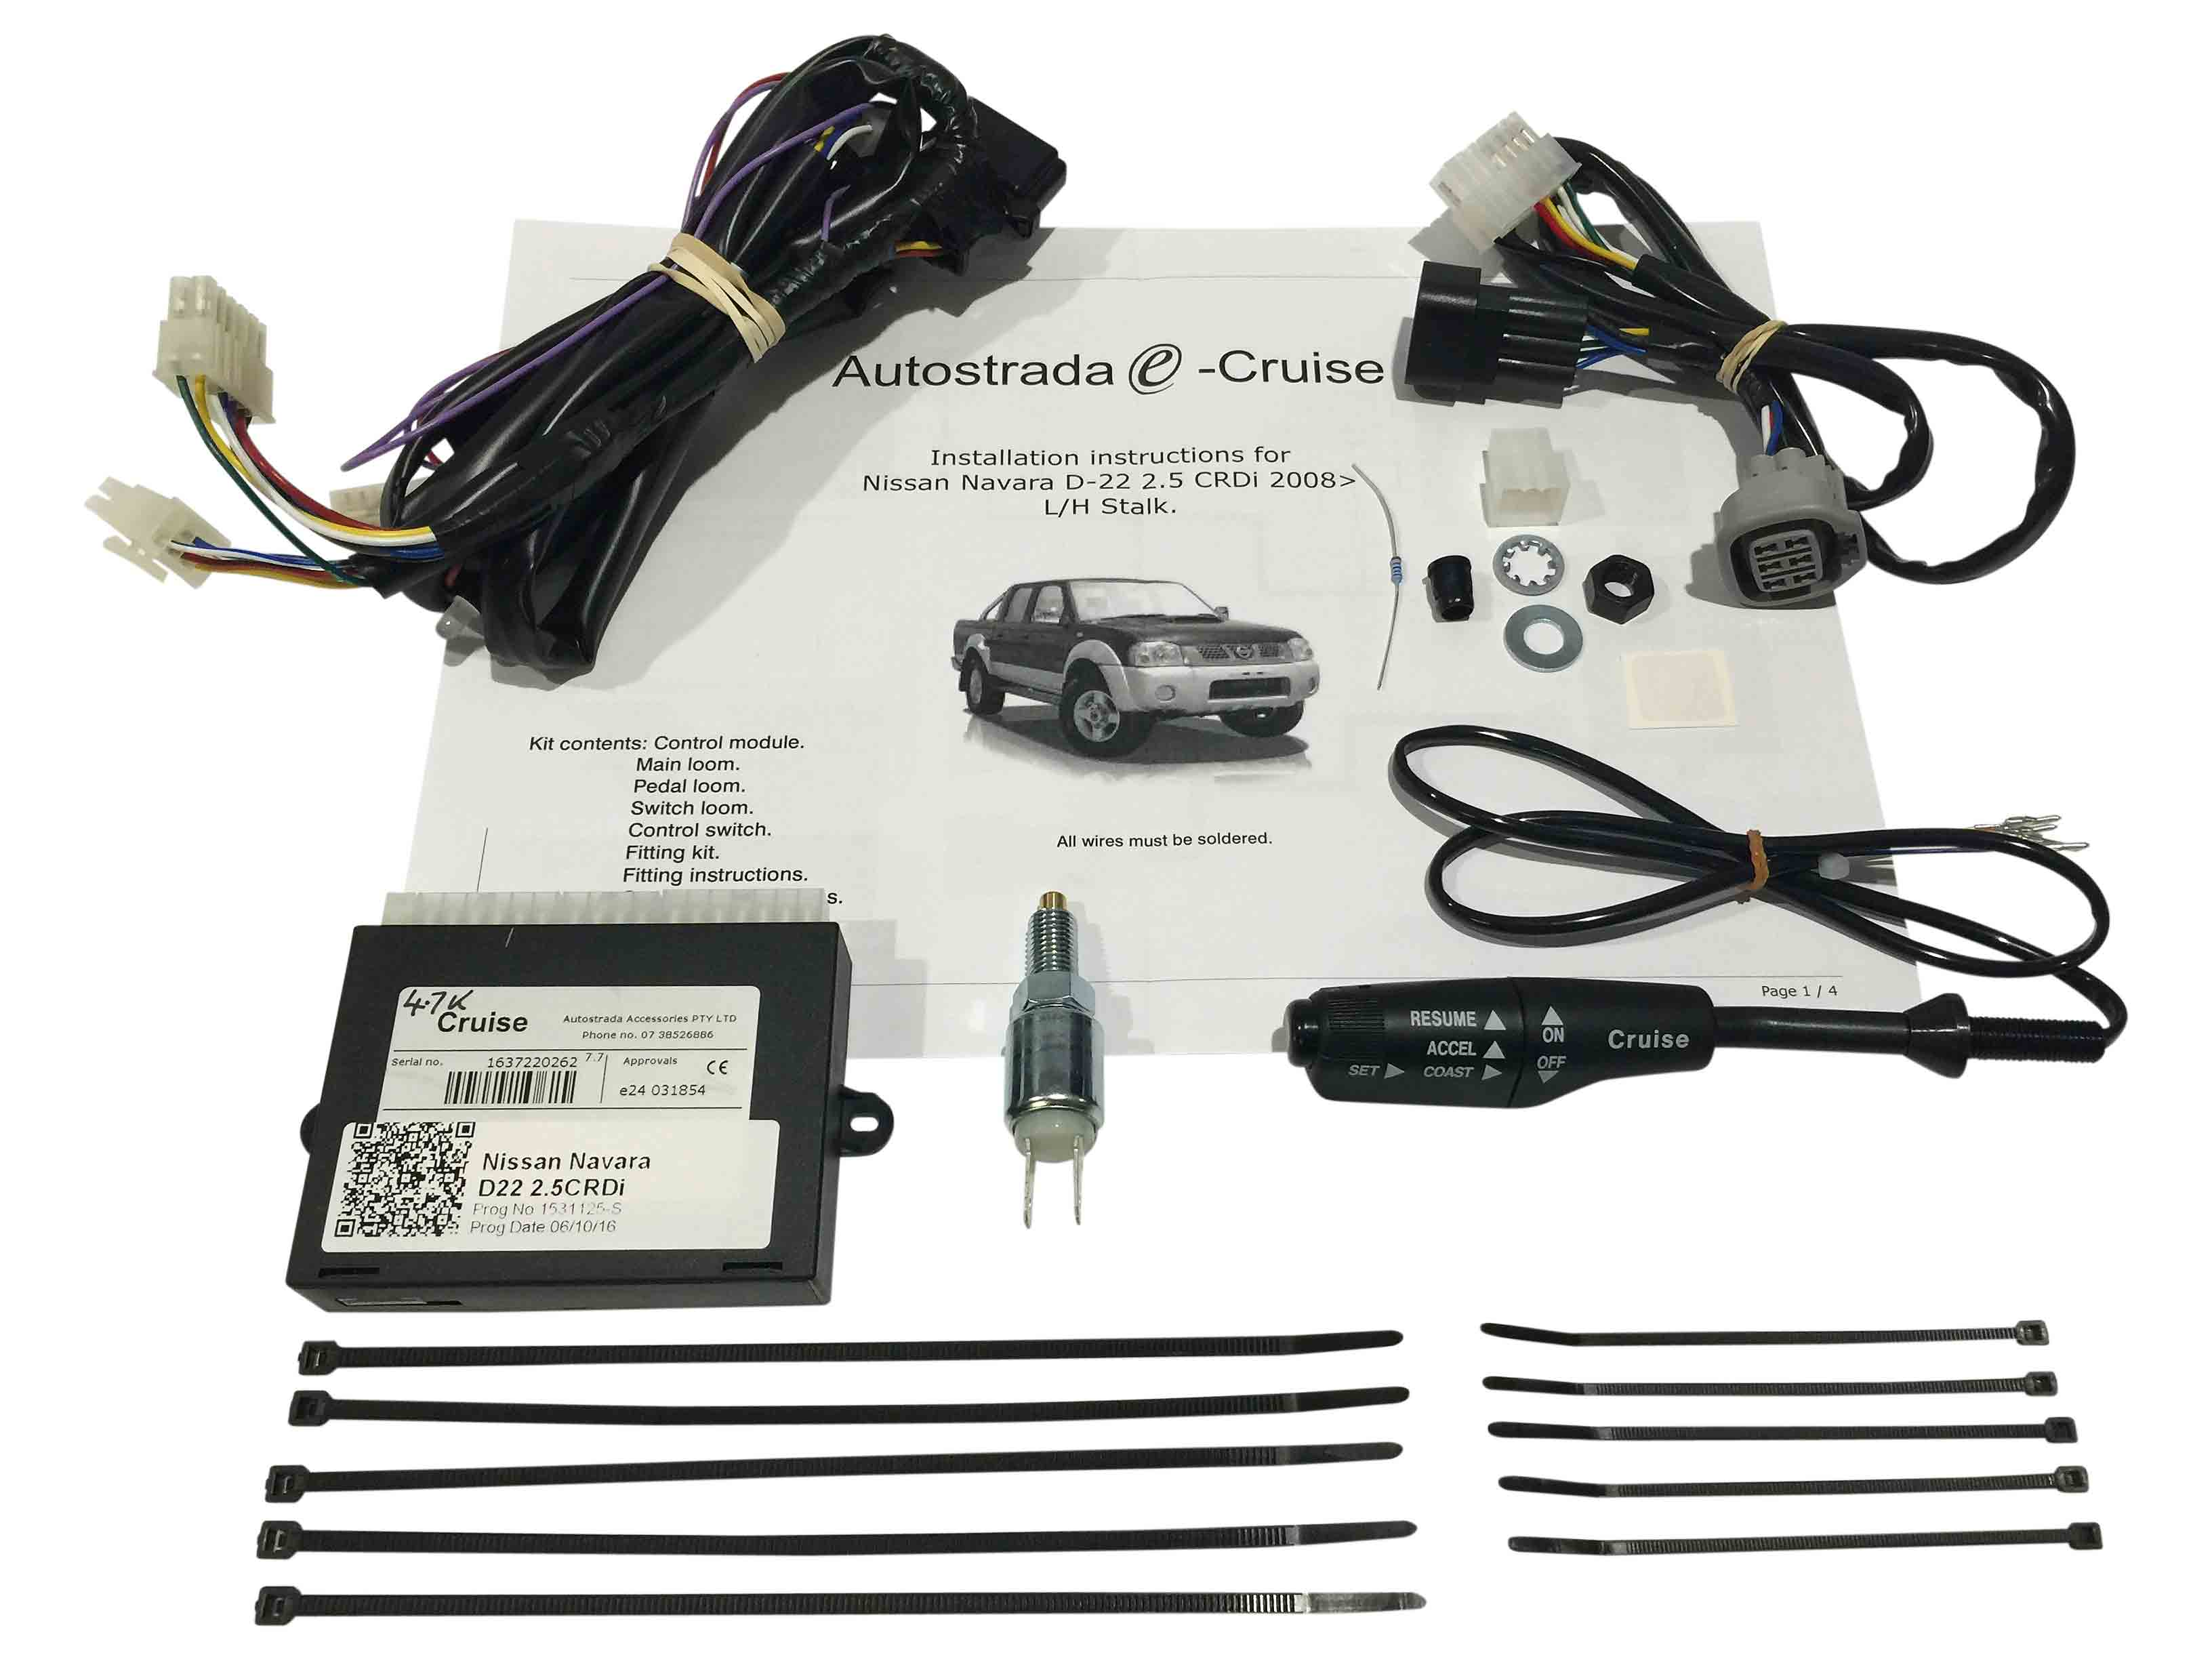 ecni02s__1 car & truck cruise control units ebay ap60 cruise control wiring diagram at n-0.co